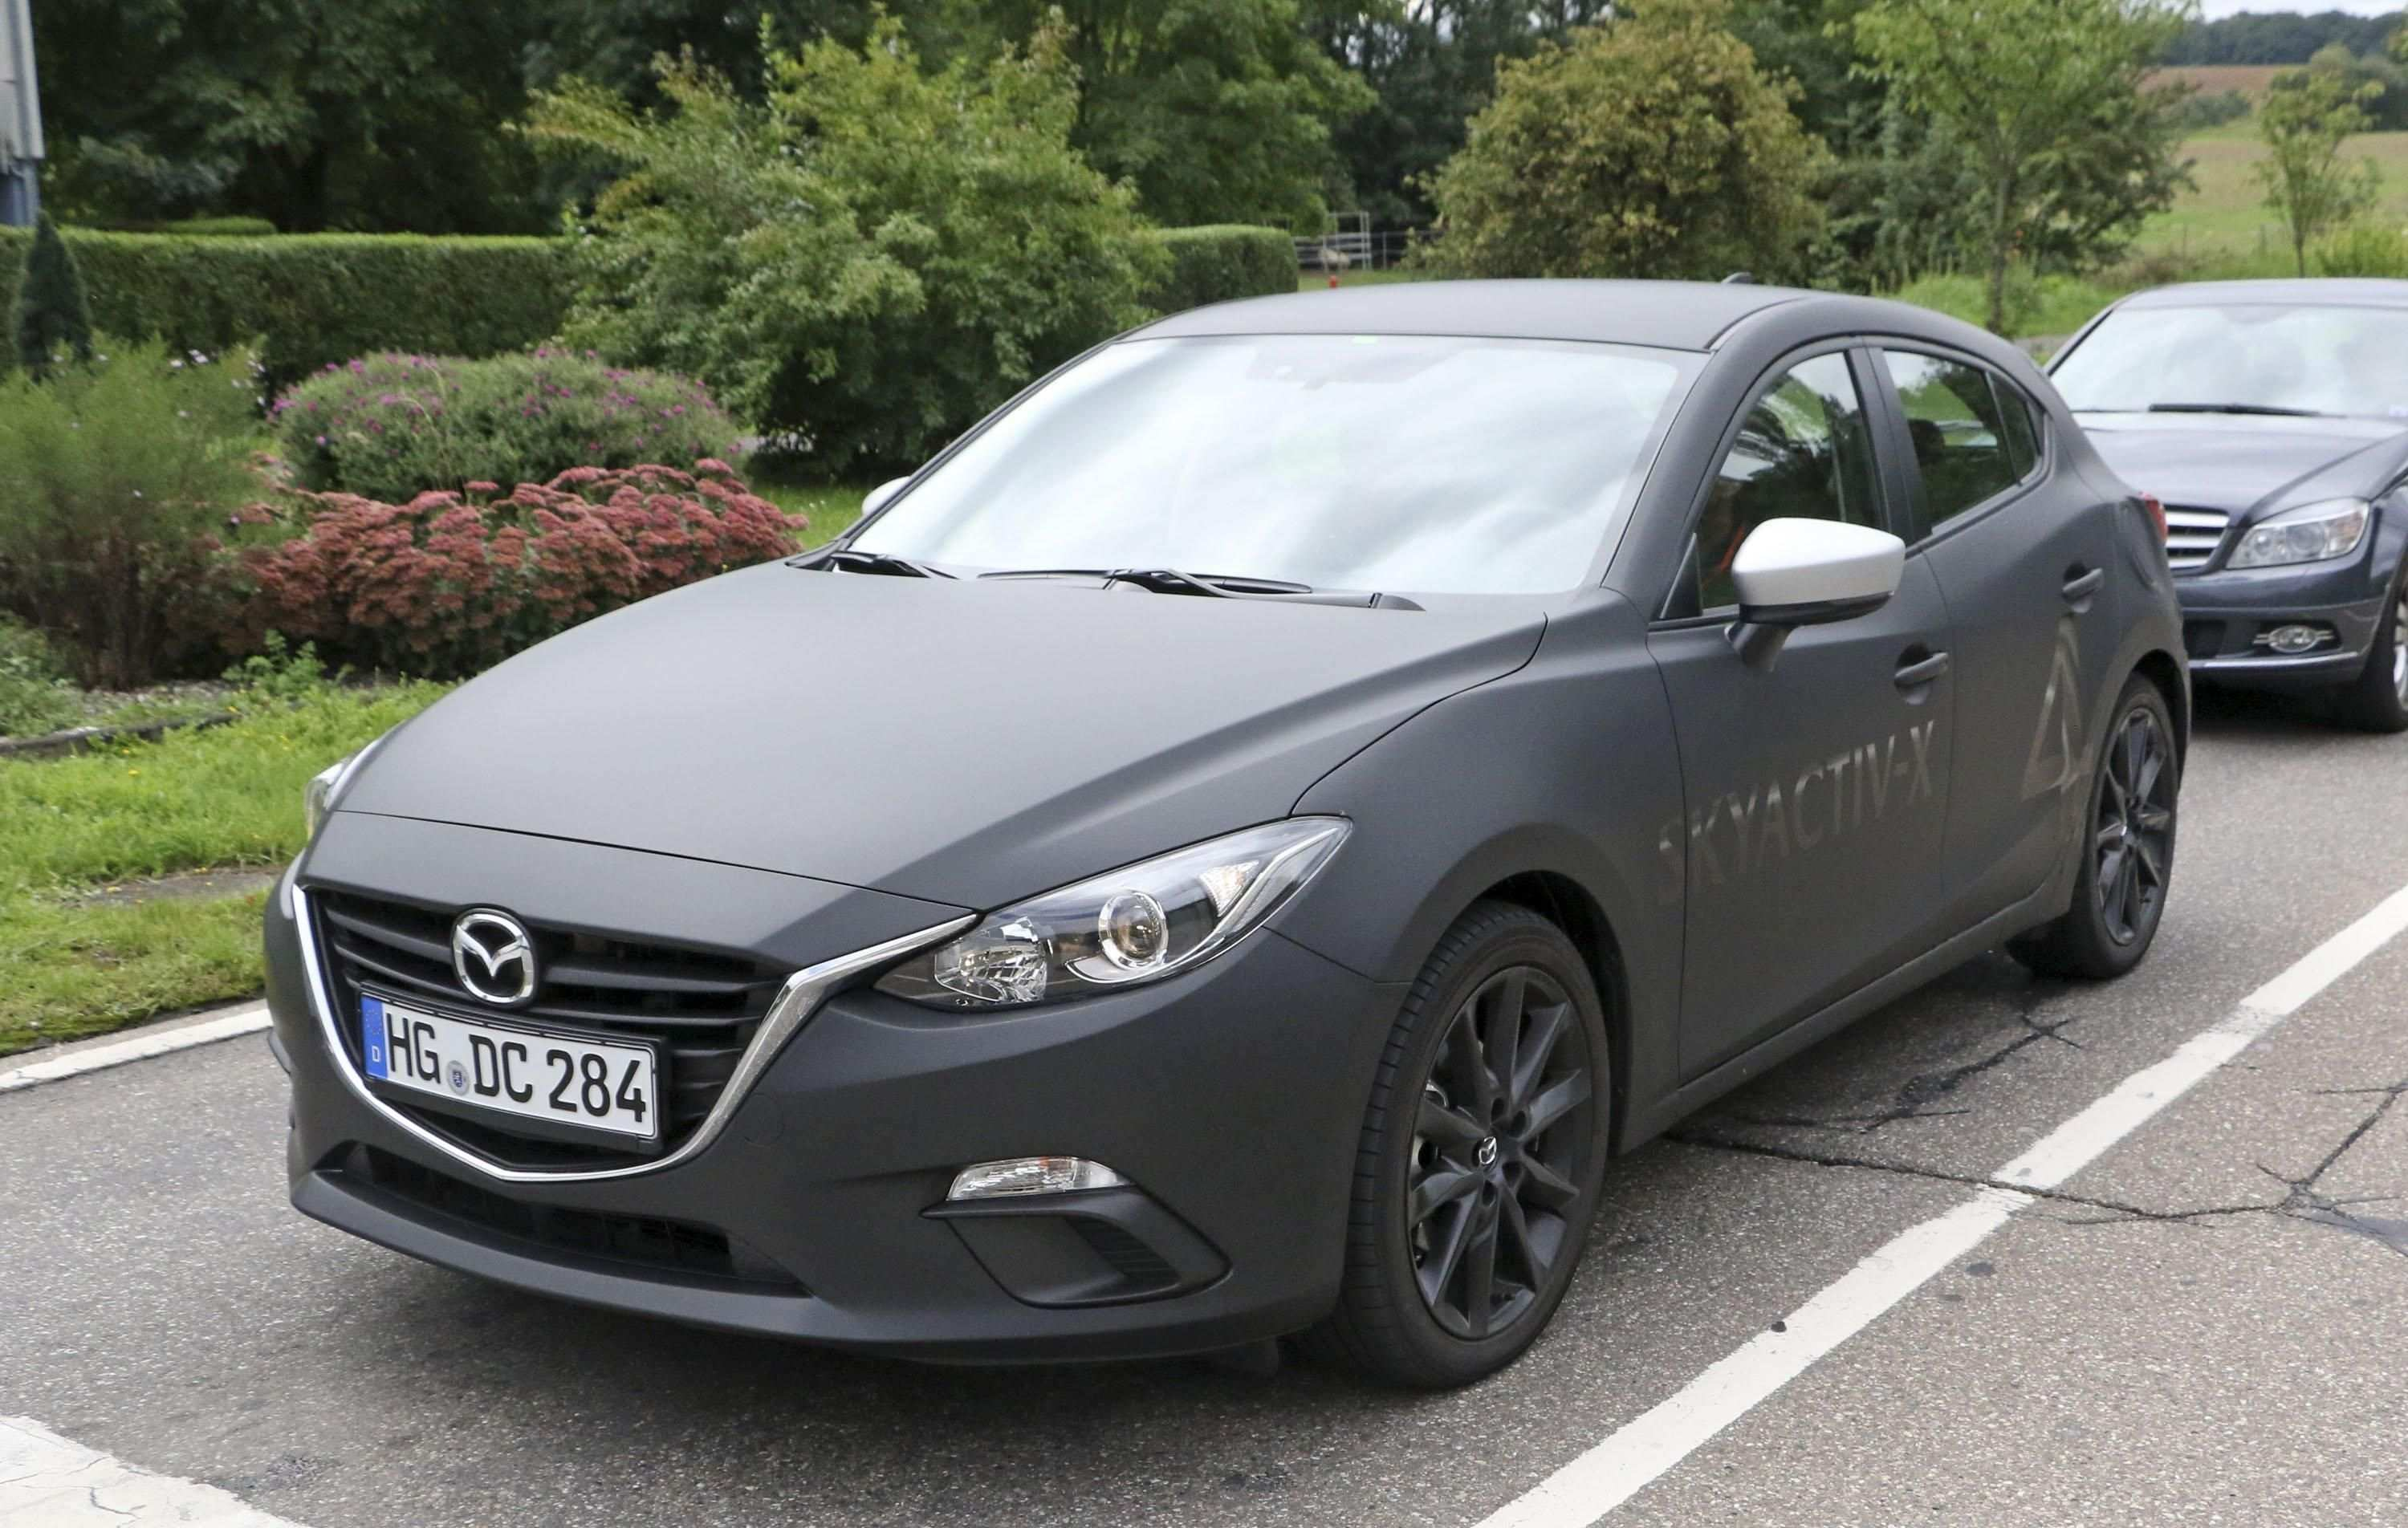 54 Concept of Best Mazda 3 2019 Price Release Date Price And Review Specs and Review with Best Mazda 3 2019 Price Release Date Price And Review